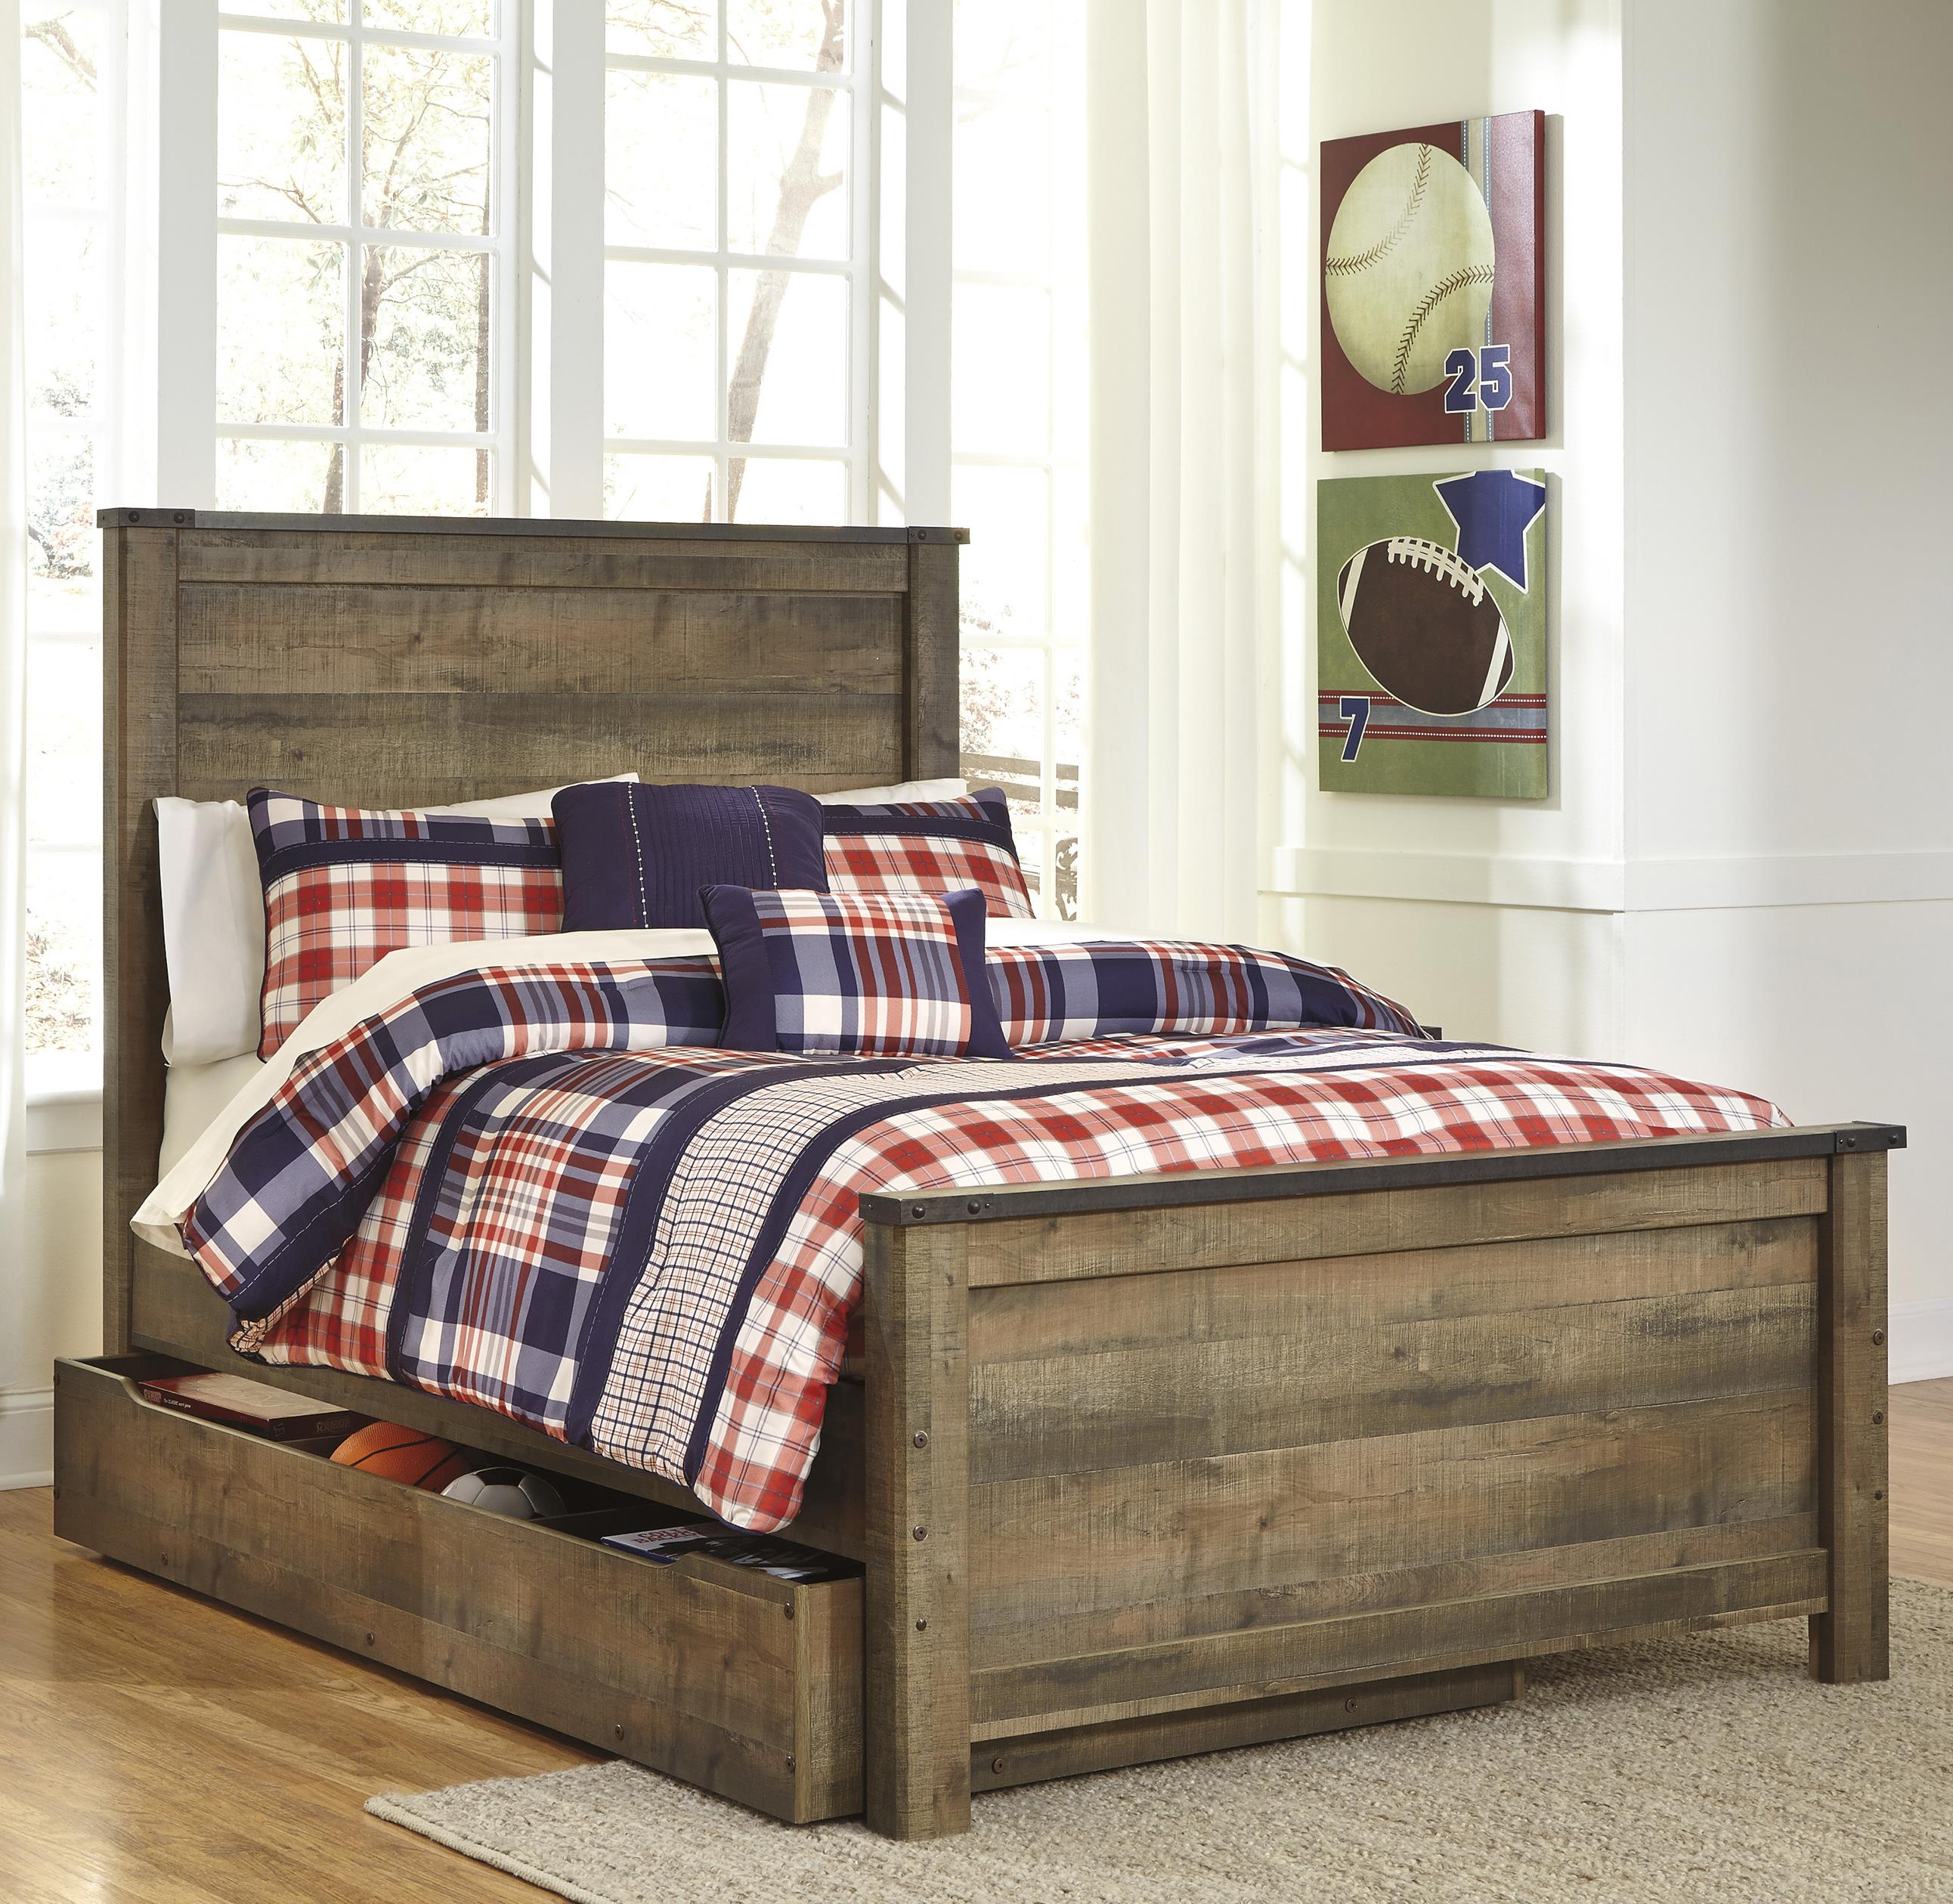 Signature Design By Ashley Trinell Rustic Look Full Panel Bed With Under Bed Storage Trundle